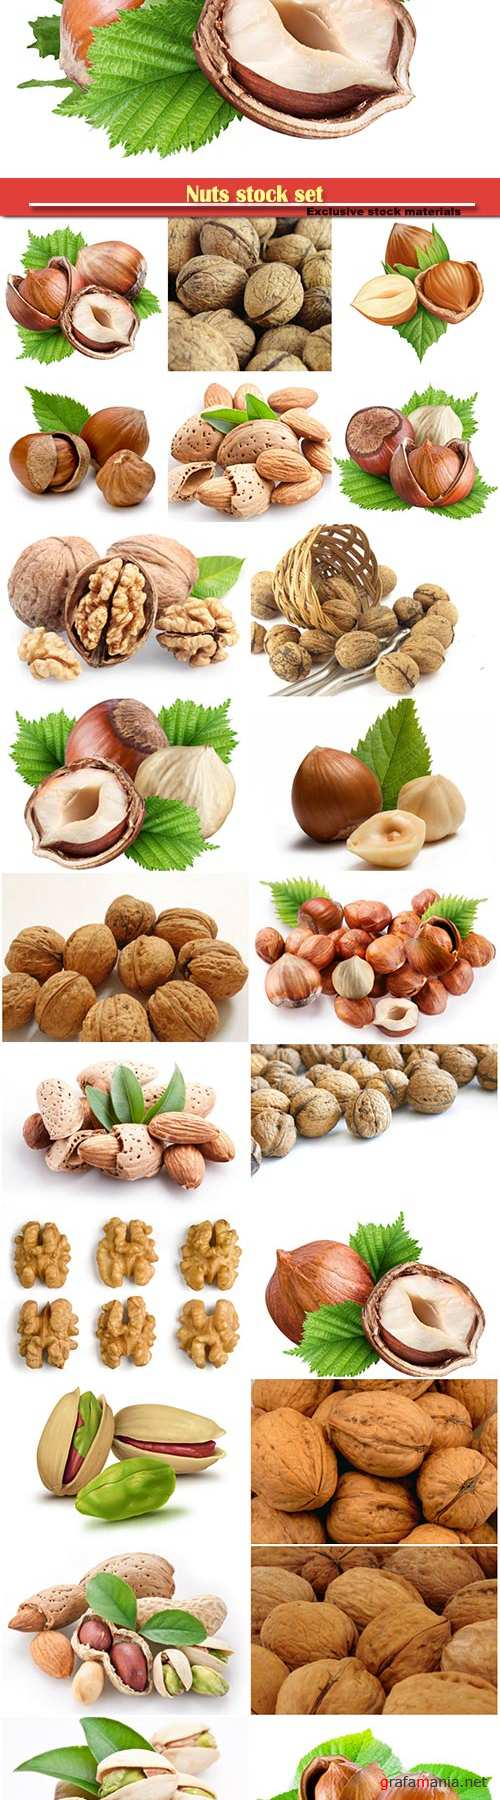 Nuts stock set